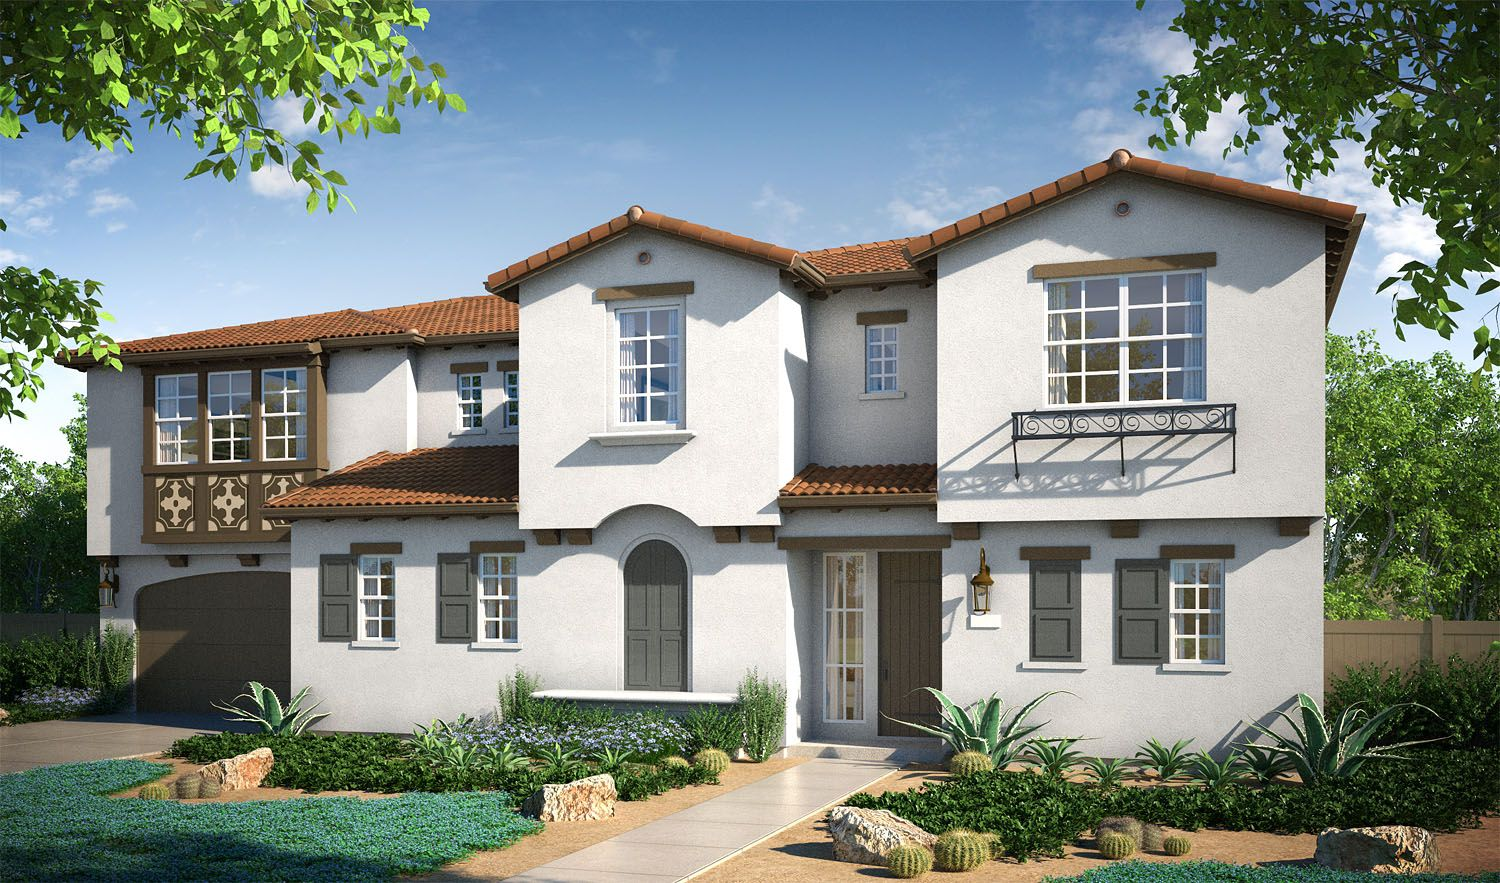 Single Family for Sale at Costabella - Capri 301 Costa Bella Court Costa Mesa, California 92627 United States